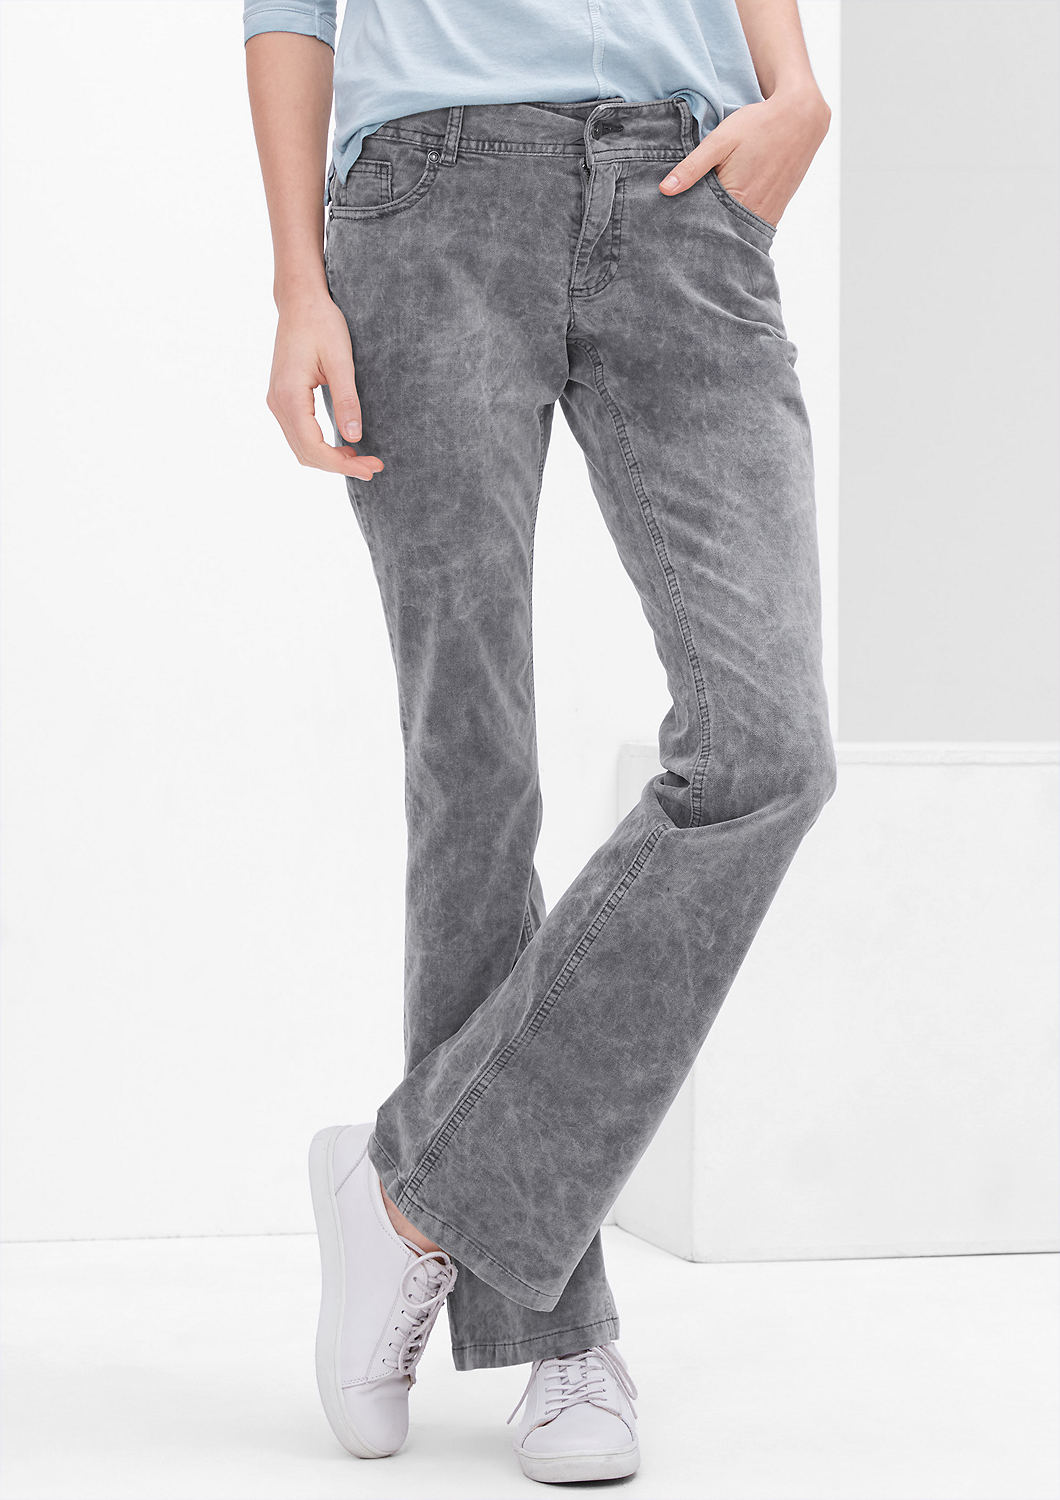 Bootcut s oliver